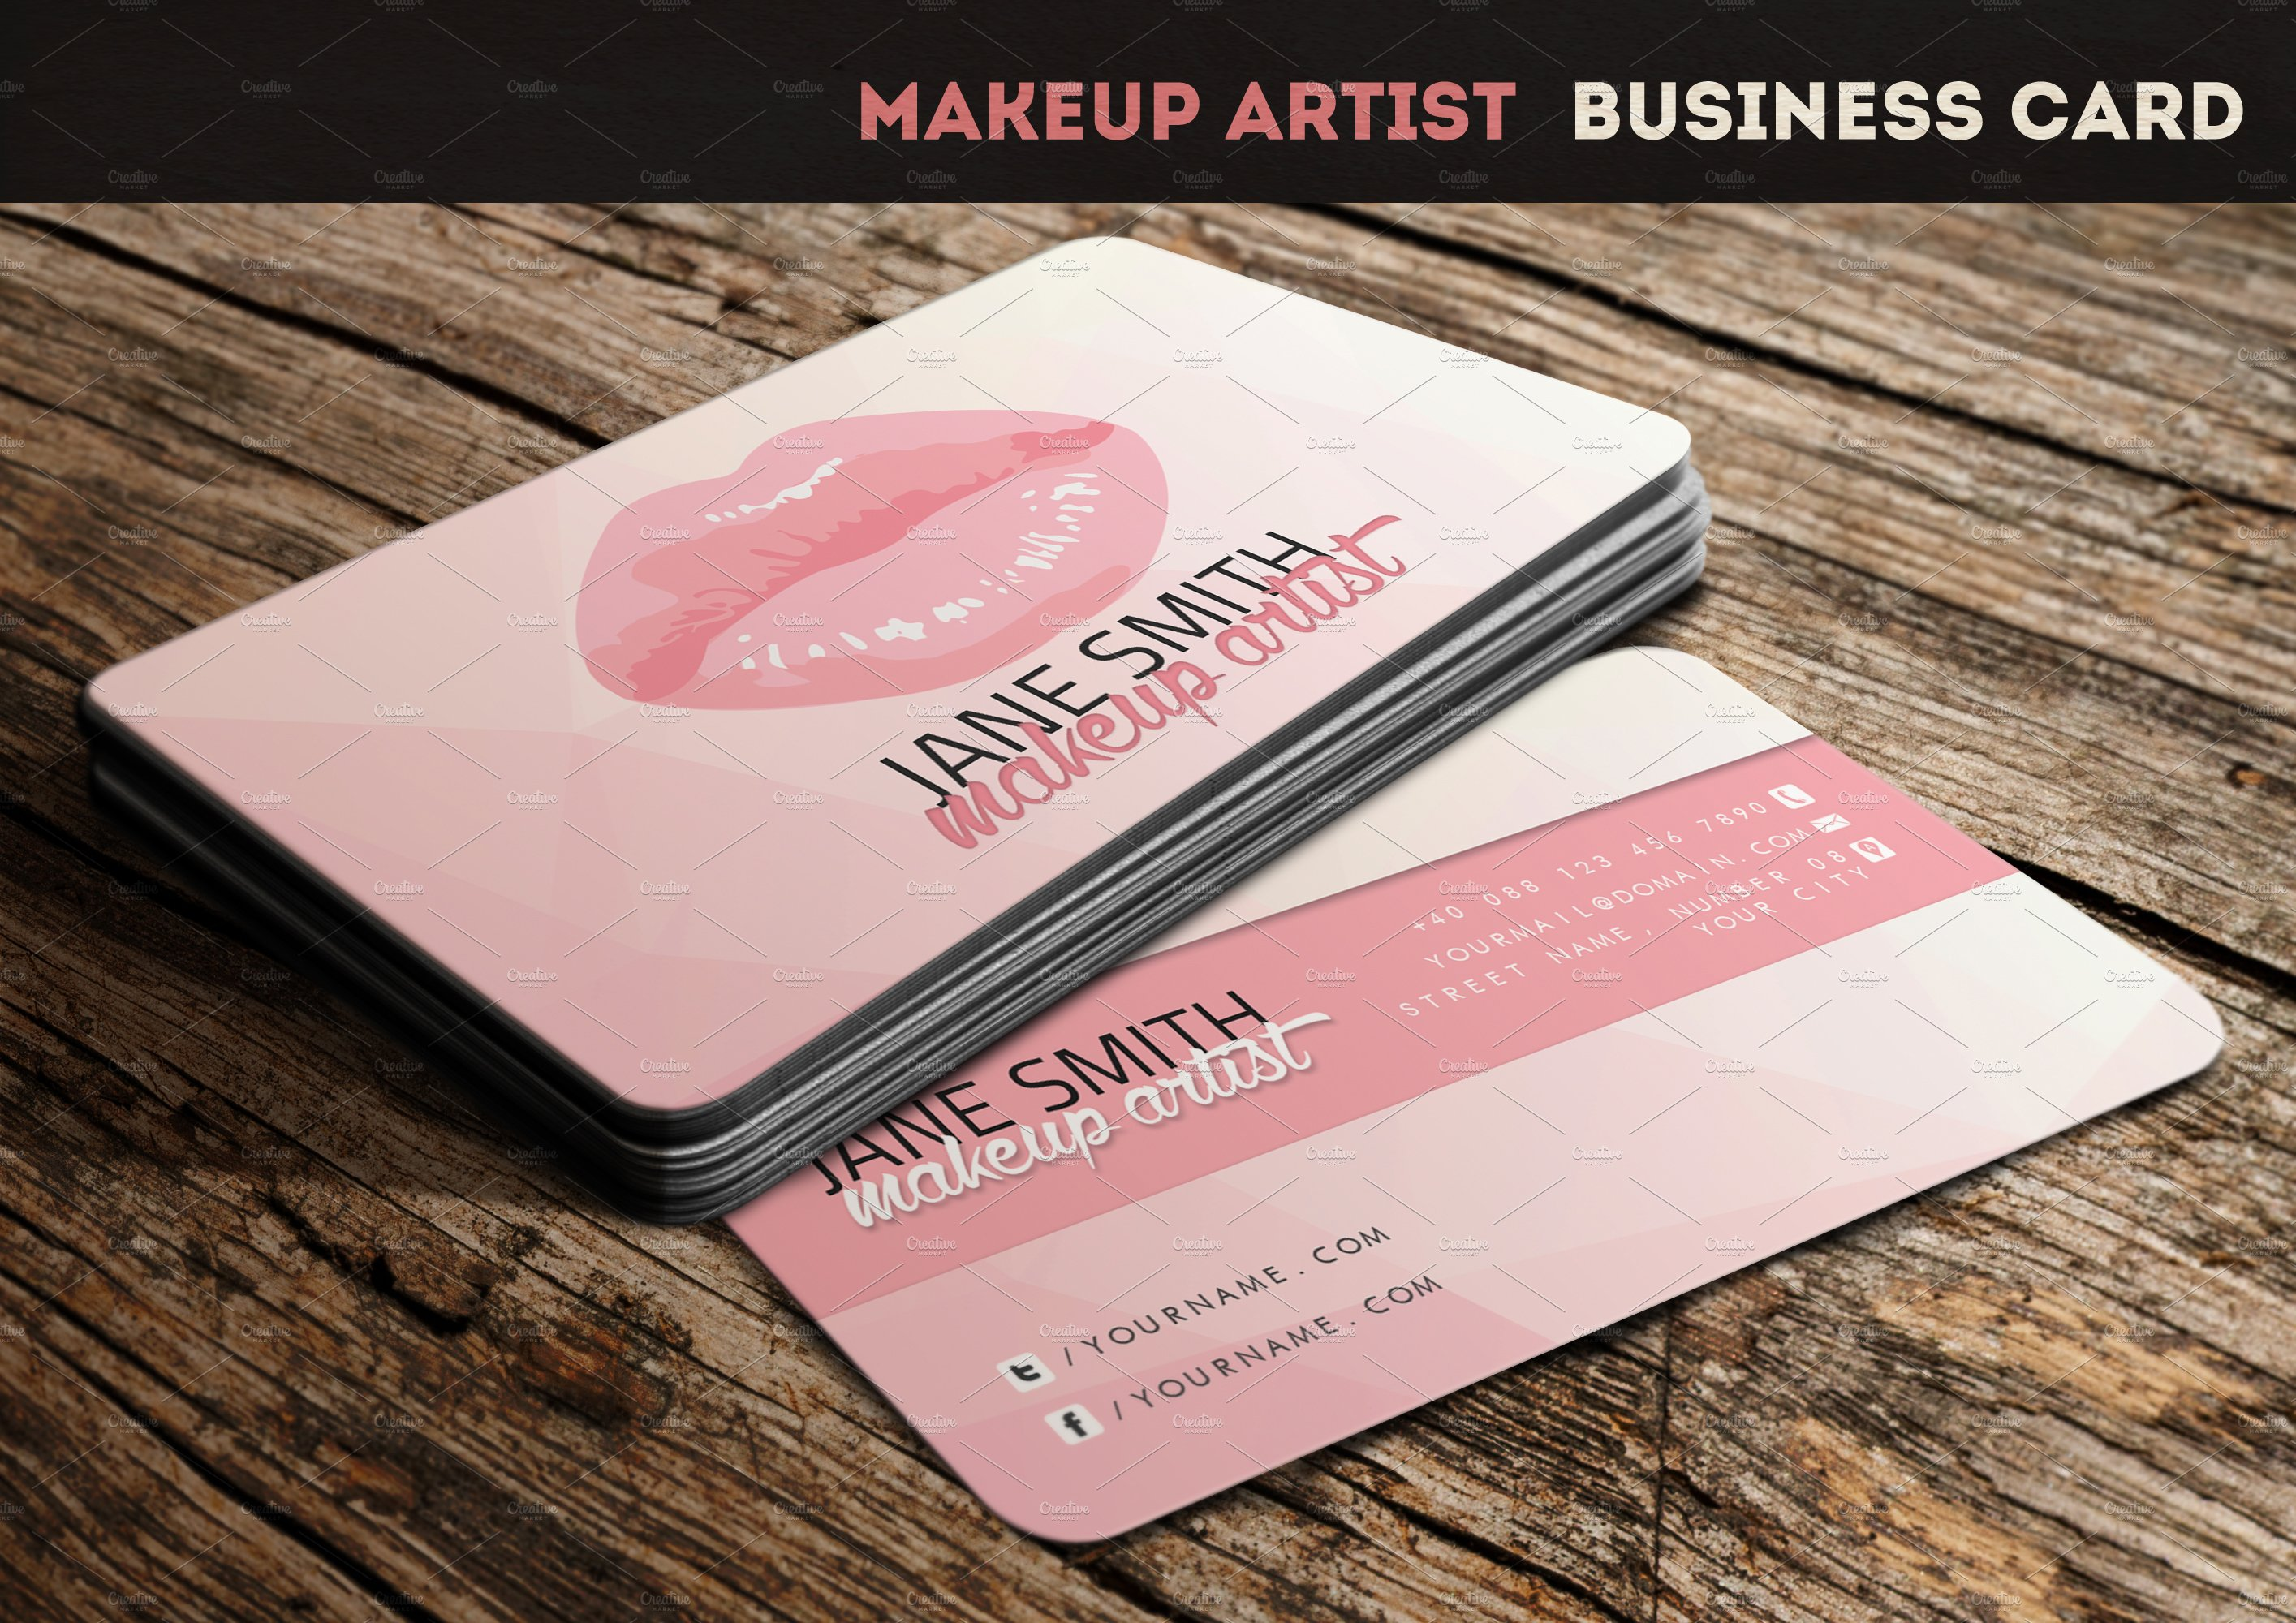 Makeup Artist Business Card ~ Business Card Templates ~ Creative ...